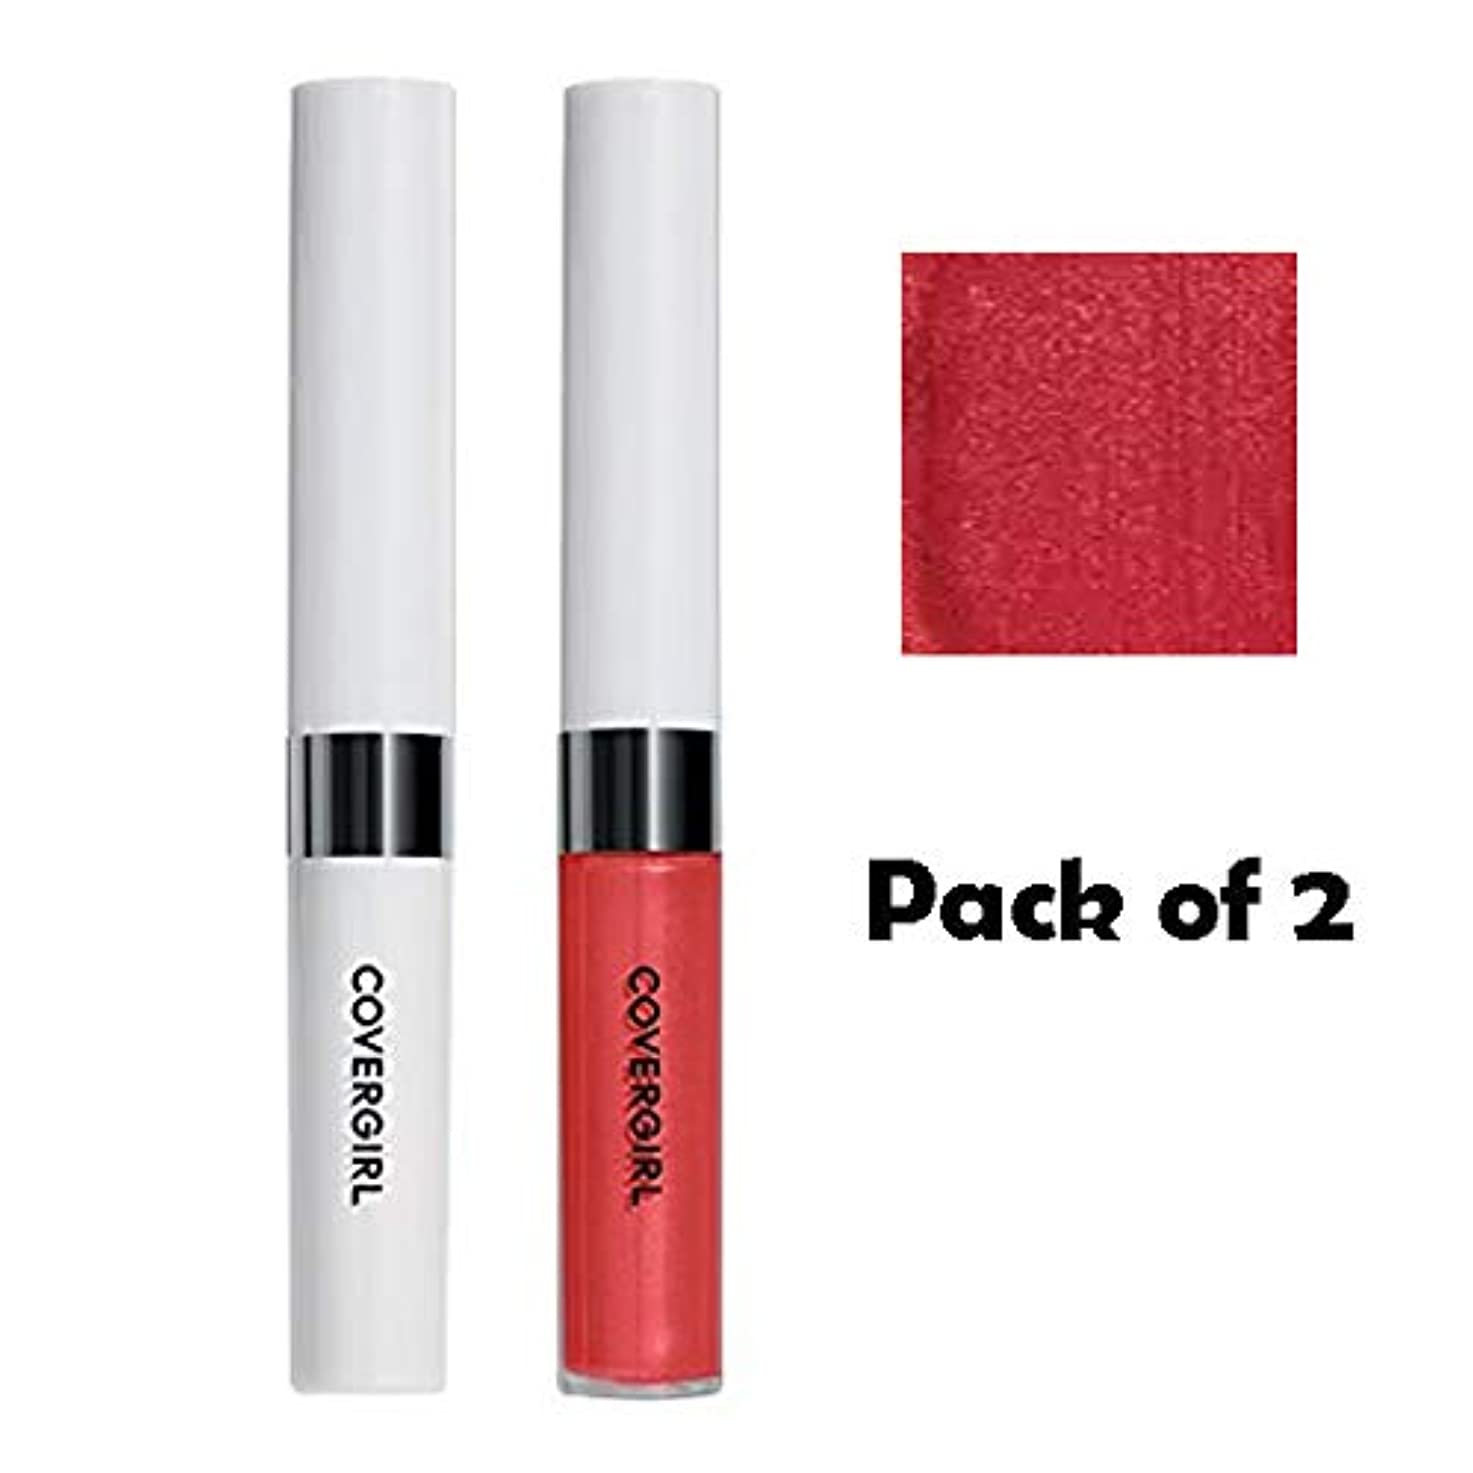 COVERGIRL Outlast All-Day Moisturizing Lip Color - Sparkling Wine 522 (2 Packs) [海外直送品] [並行輸入品]